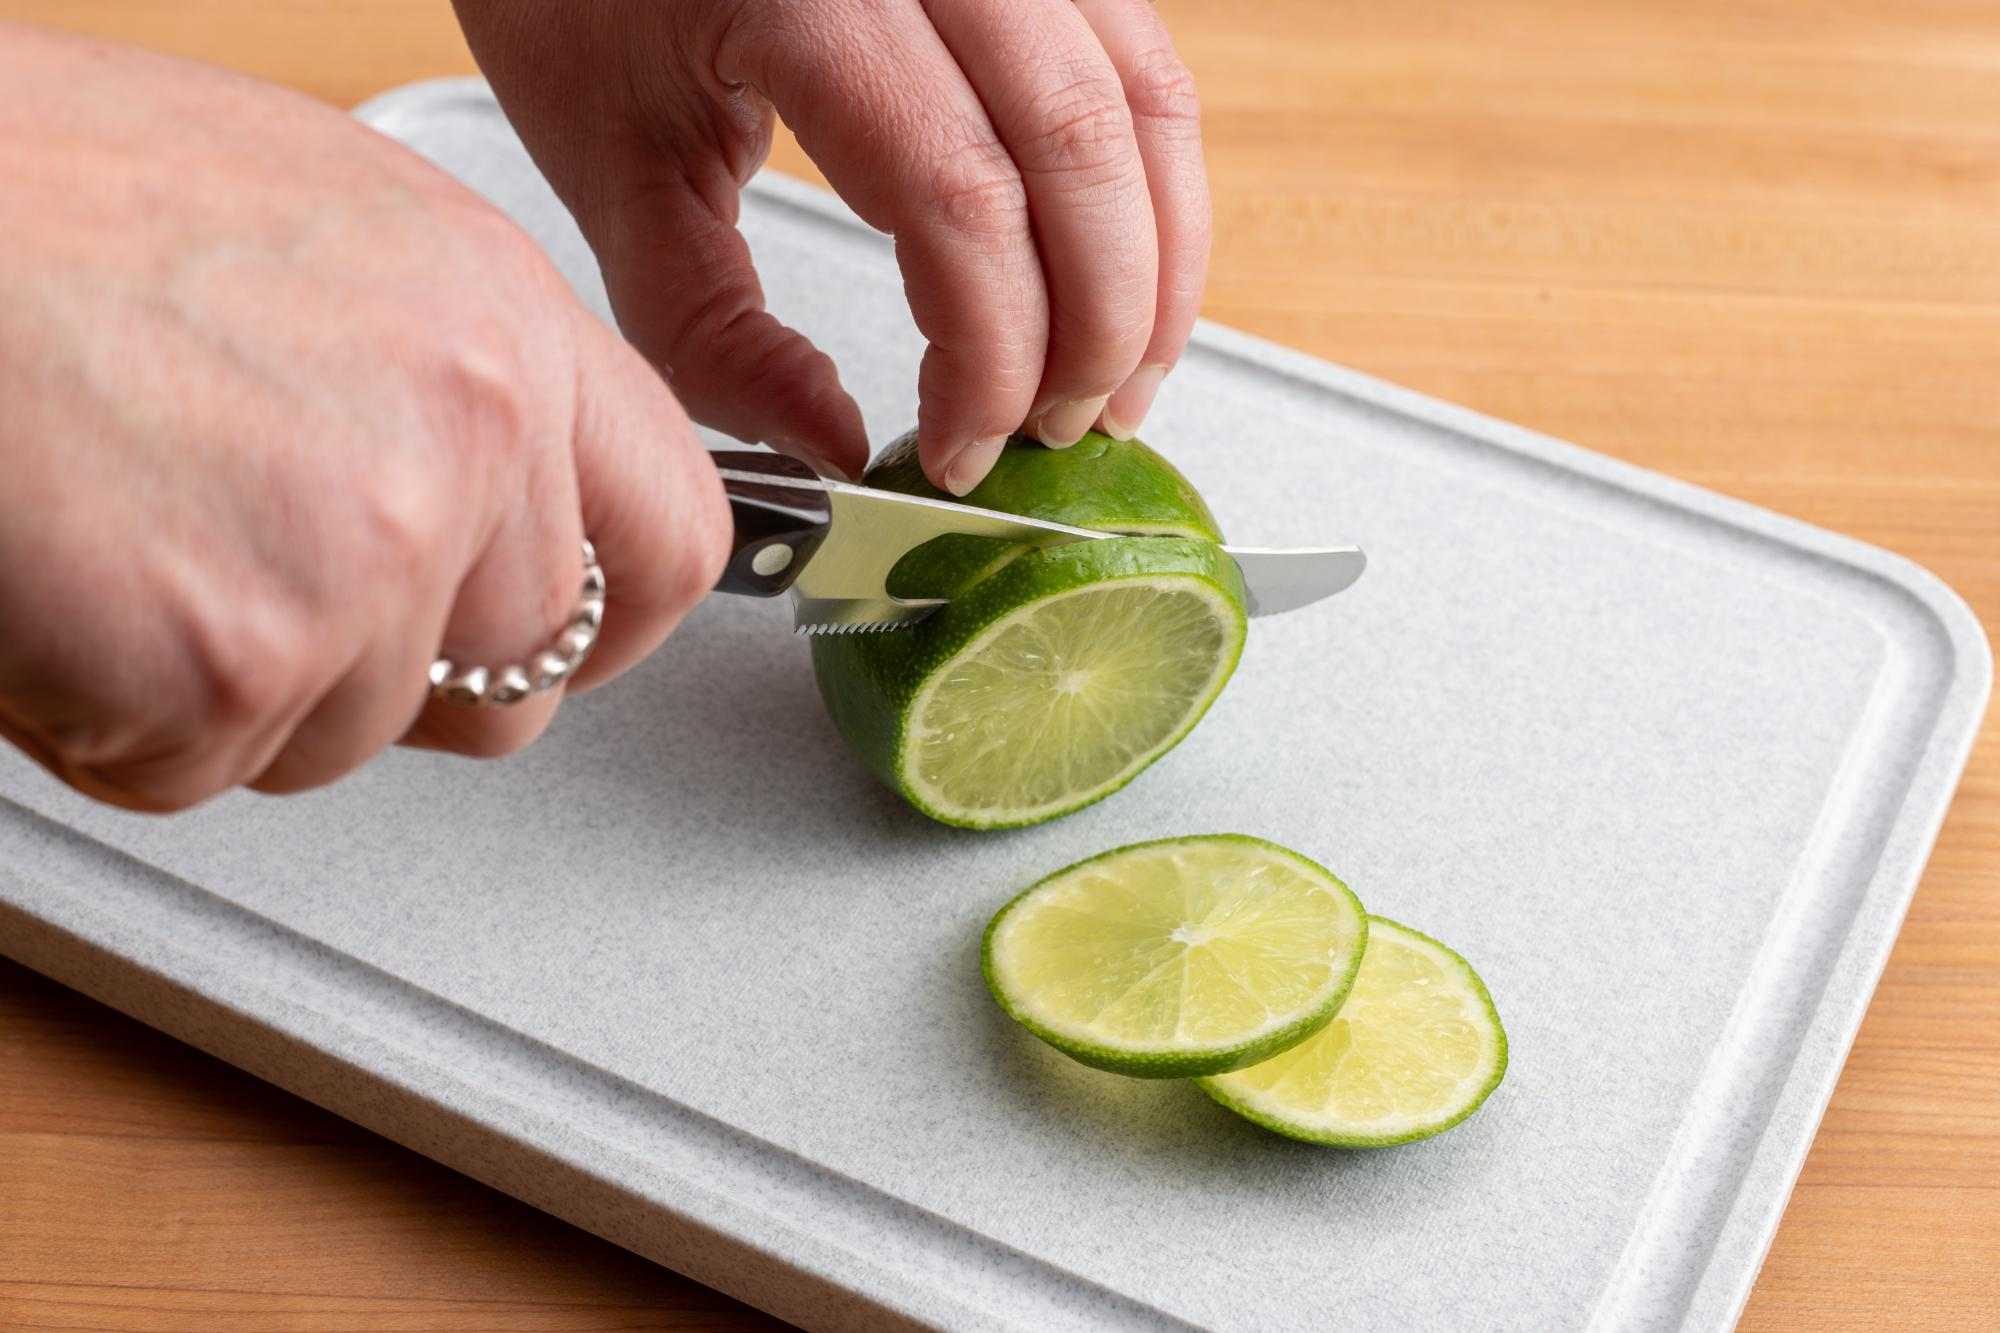 Use the Mini Cheese Knife to slice the lime.